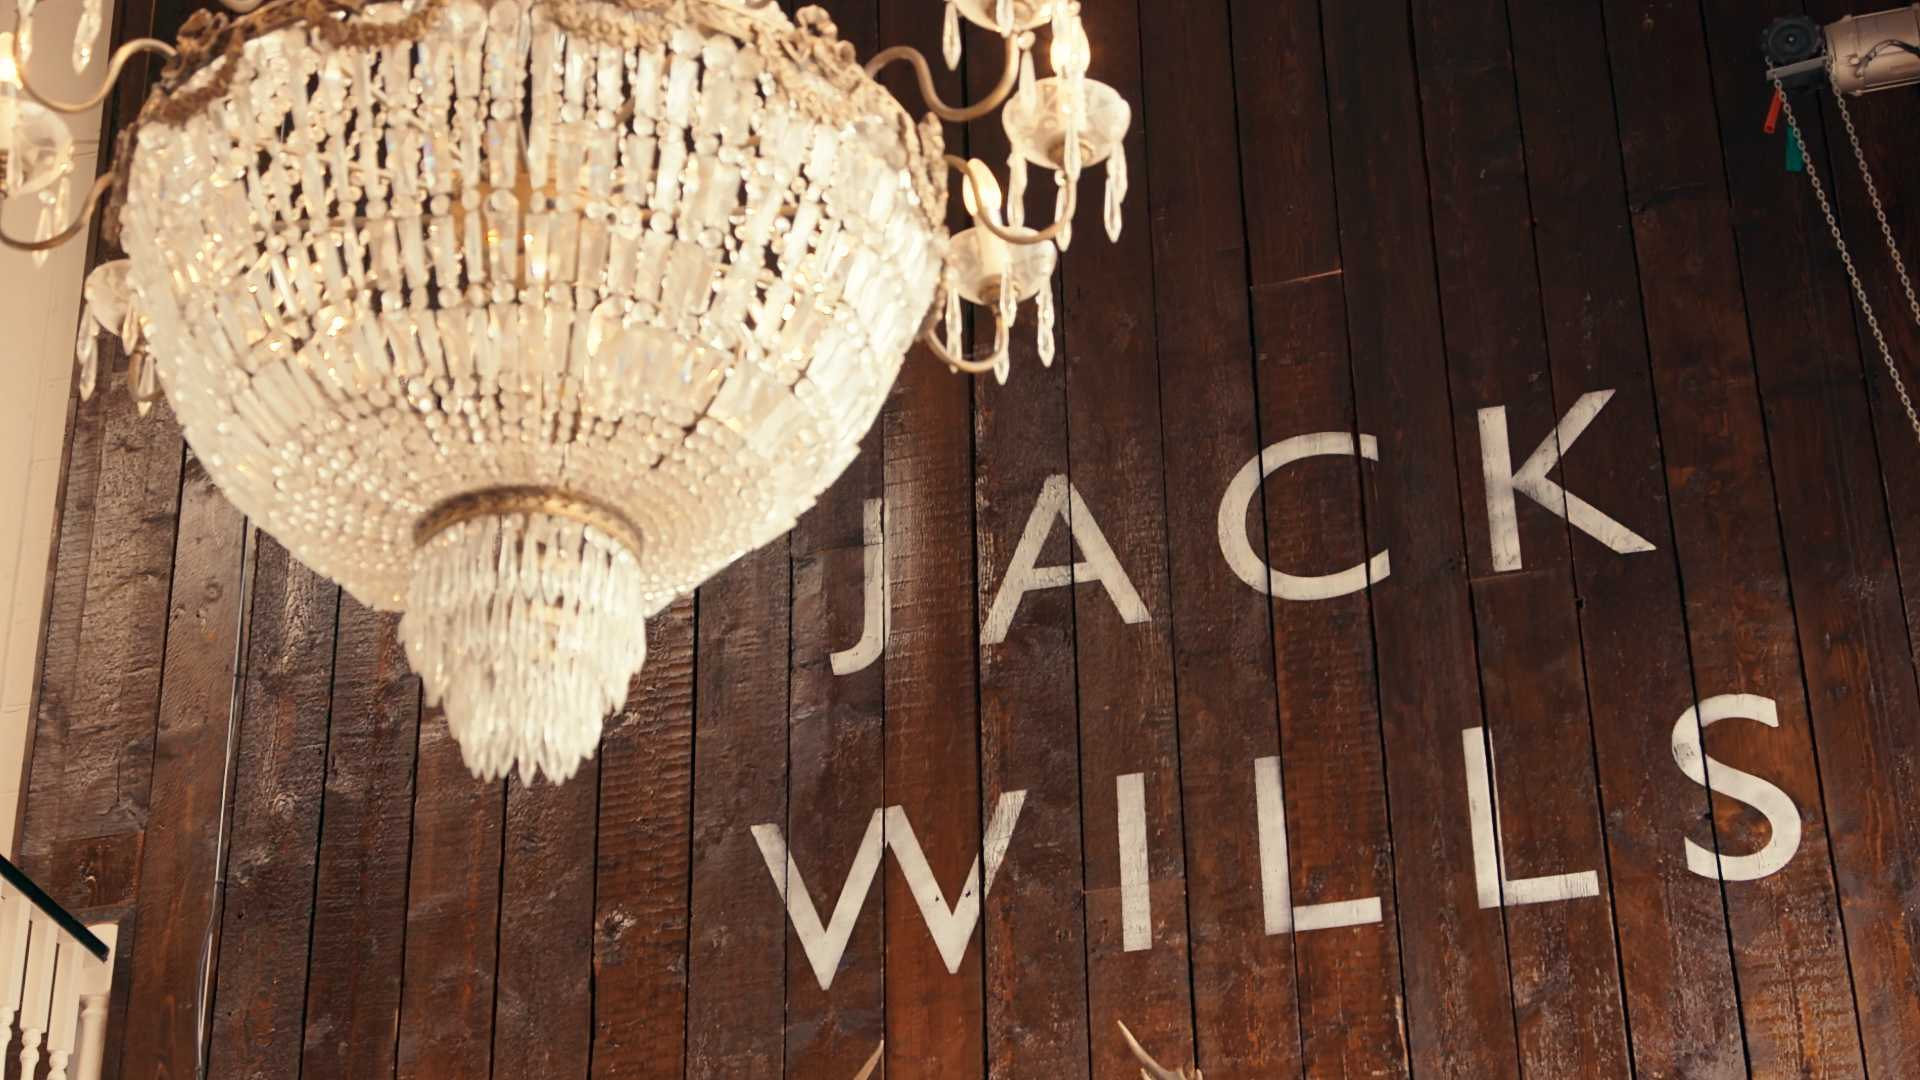 Uniting flexible benefits with teen spirit to dominate retail – Jack Wills' story